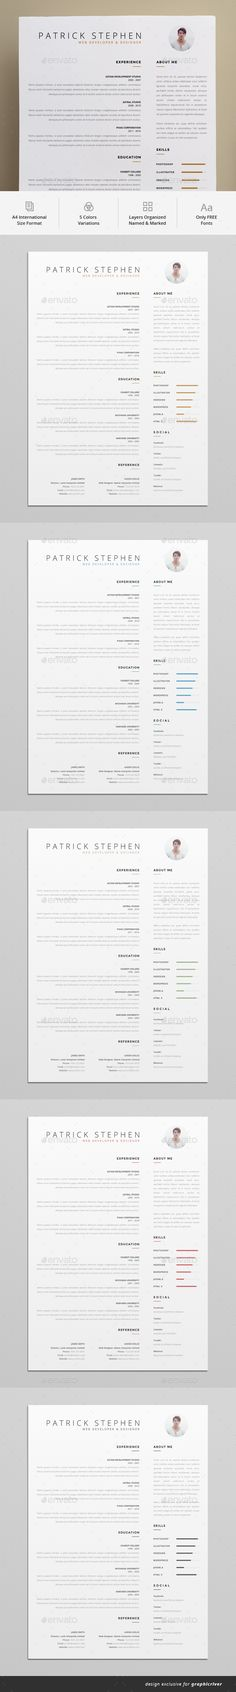 20 Best And Worst Fonts To Use On Your Resume Fonts, Resume - professional resume fonts